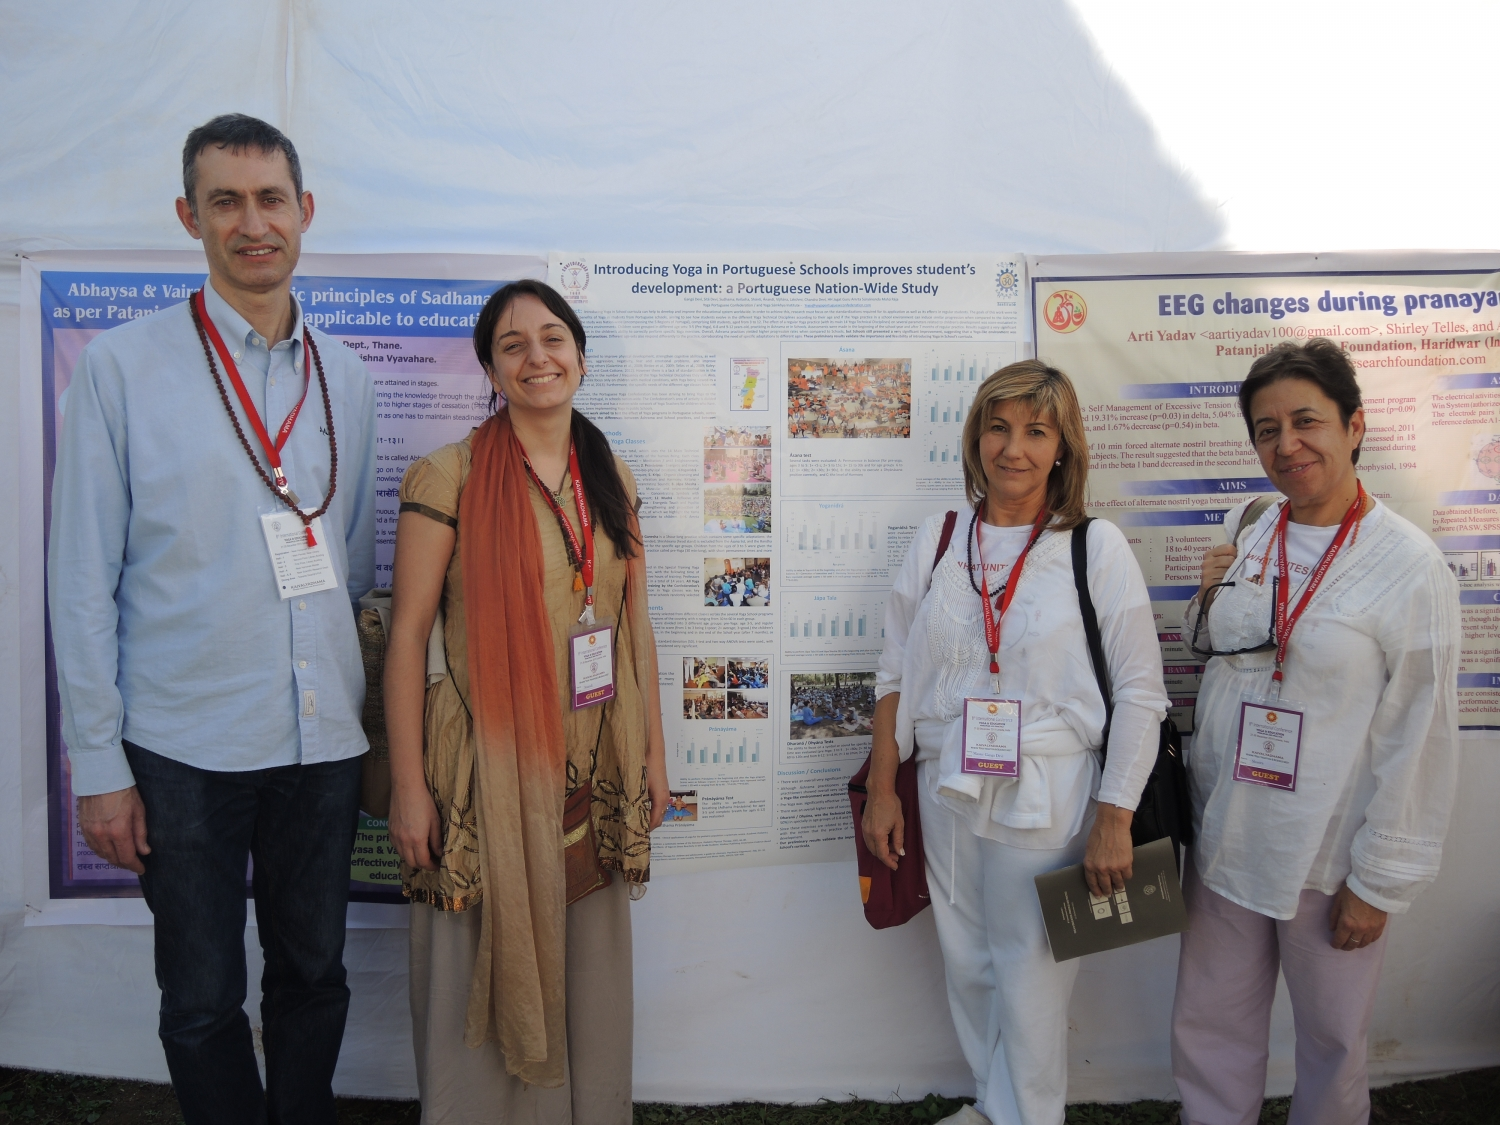 Presentación sobre Yoga en las Escuelas - 8th International Conference, Yoga & Education, Principles and Practice - Keivalyadhama Yoga Institute, Lonavala, India - 2015, diciembre